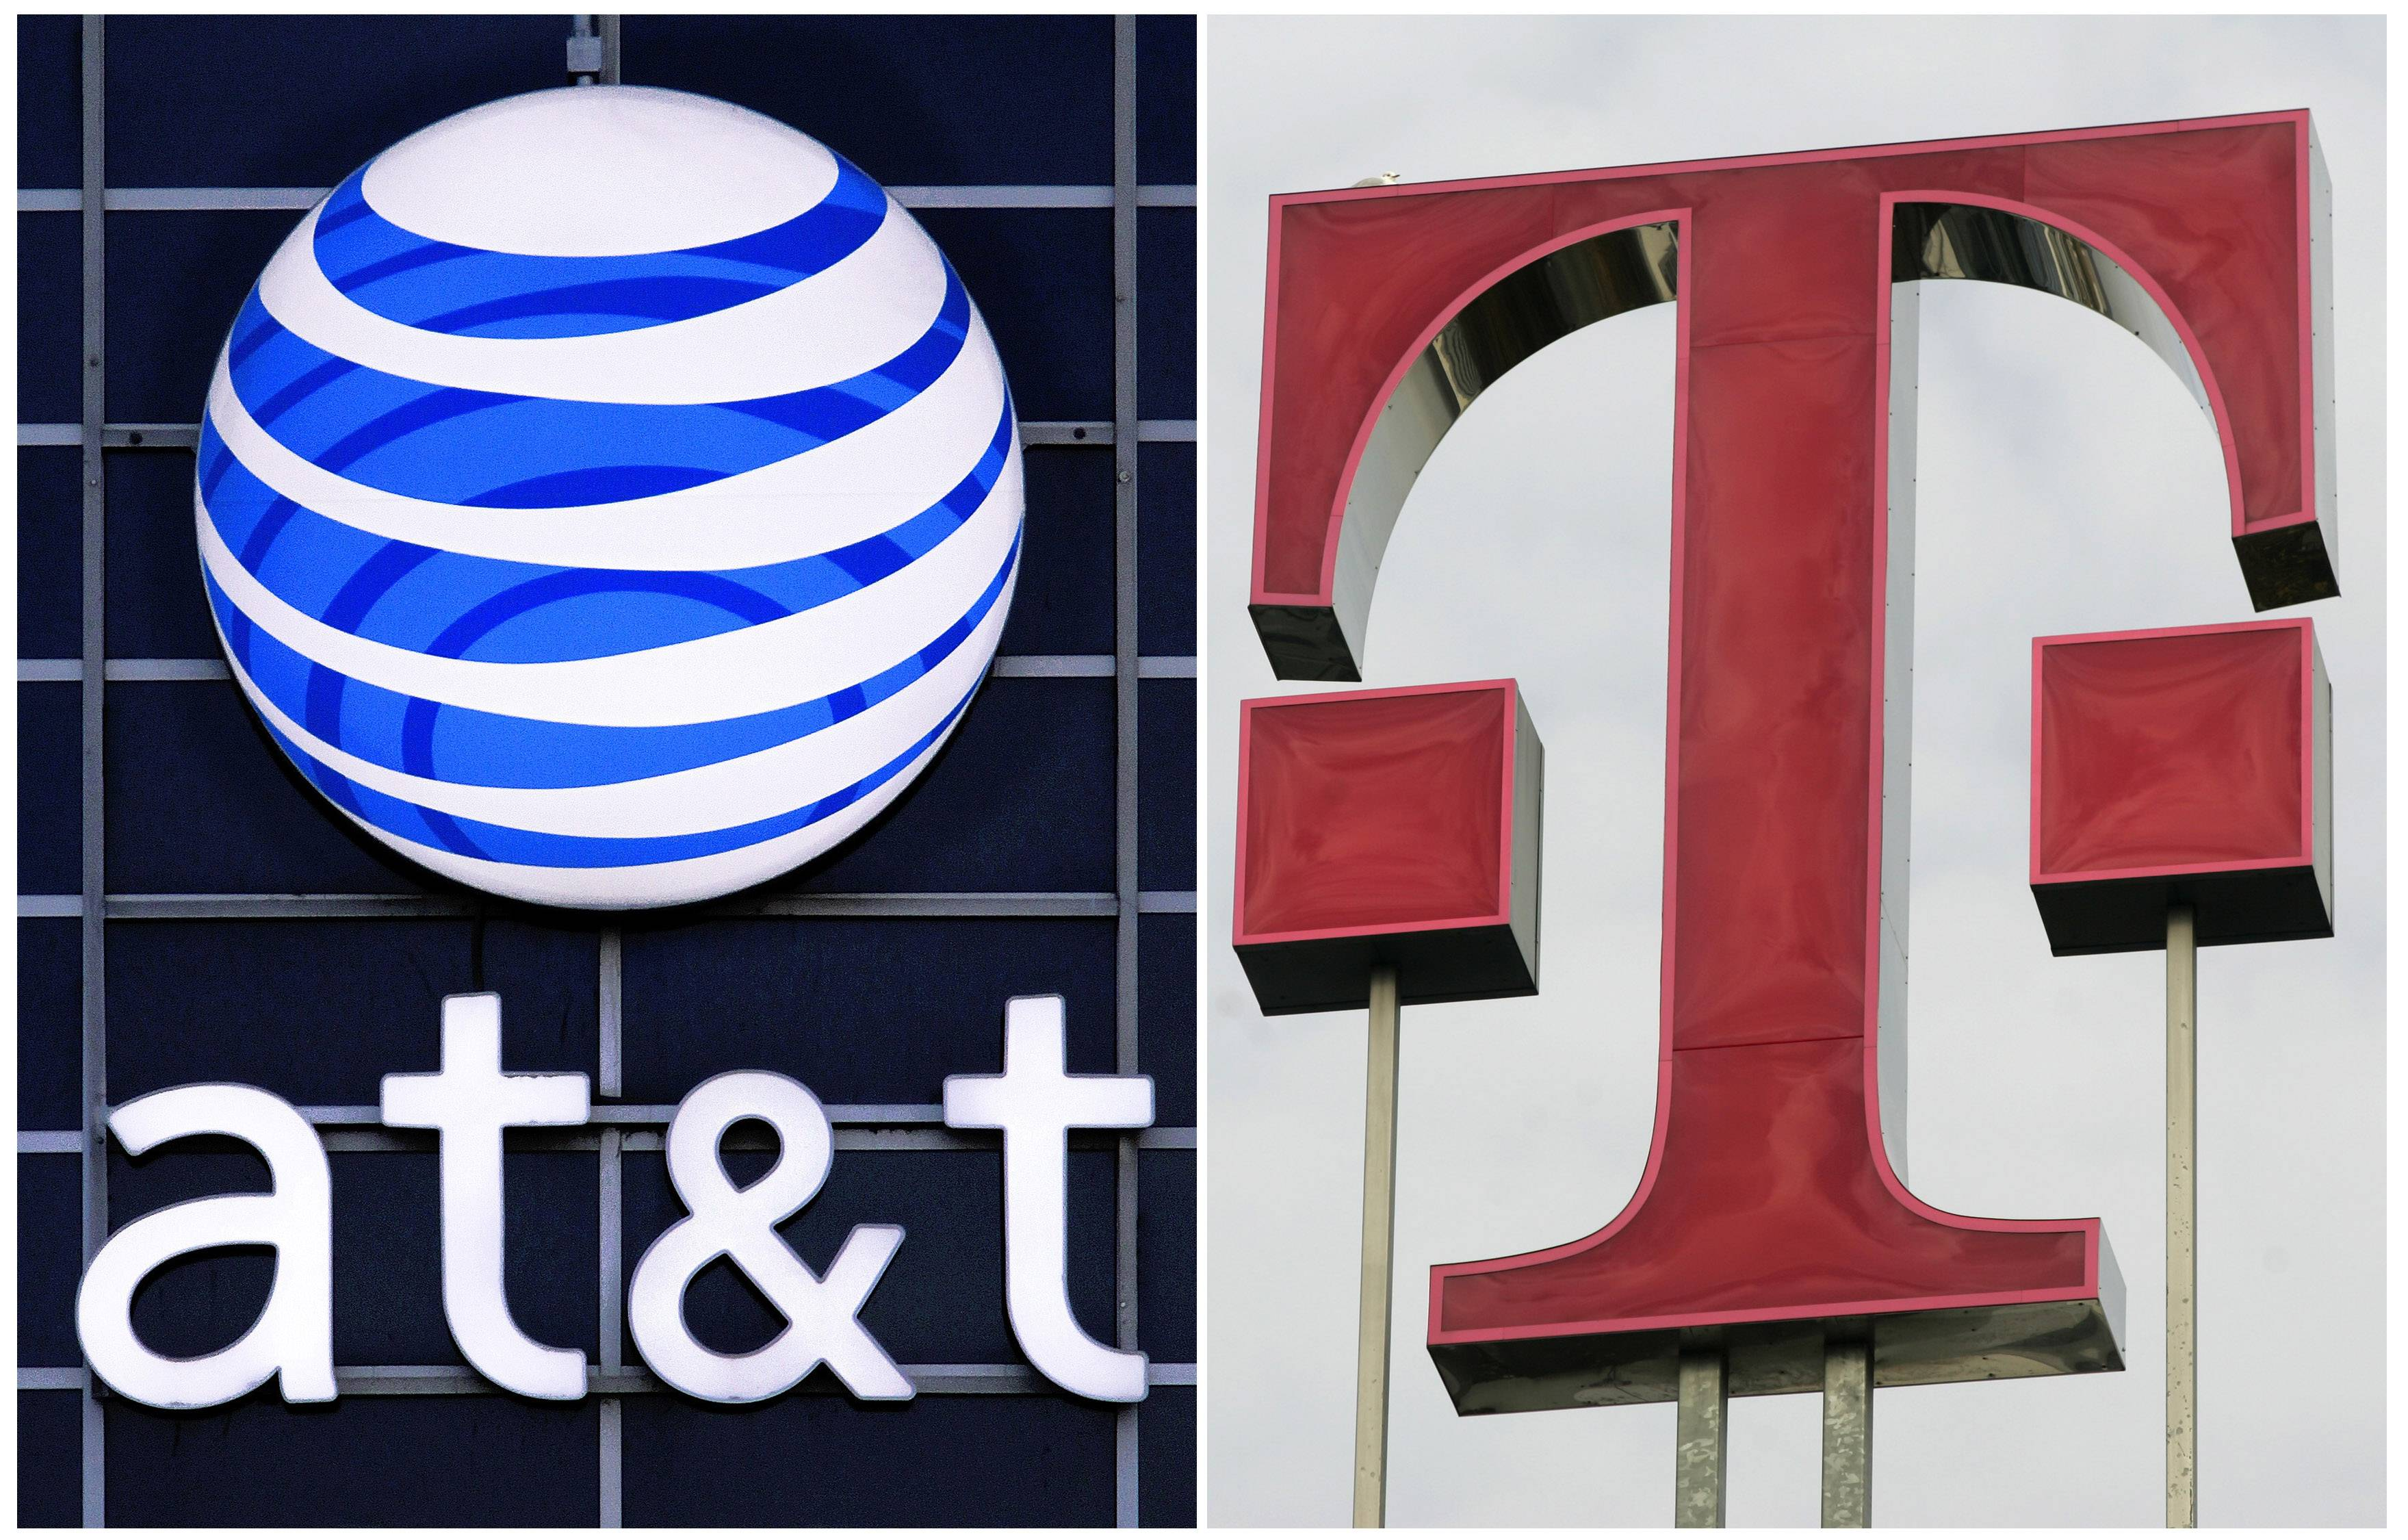 AT&T said most consumers are now off the traditional landline system as the company prepares for the next generation of 911 service. Also, T-Mobile announced it is opening 1,000 new stores nationwide, including 40 in the Chicago and suburban area as it debuts its latest upgraded network.